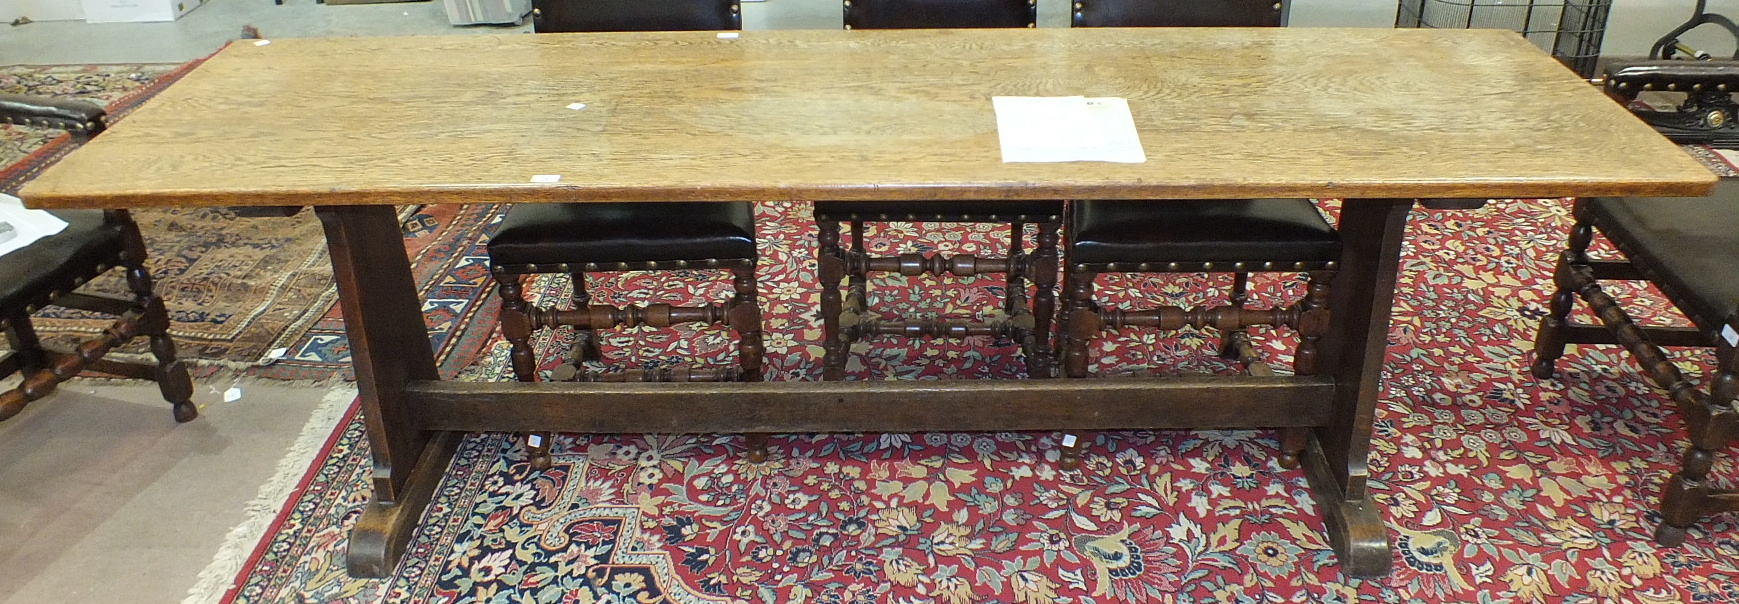 Lot 34 - An oak refectory-style narrow dining table, the rectangular top on tapered end supports united by